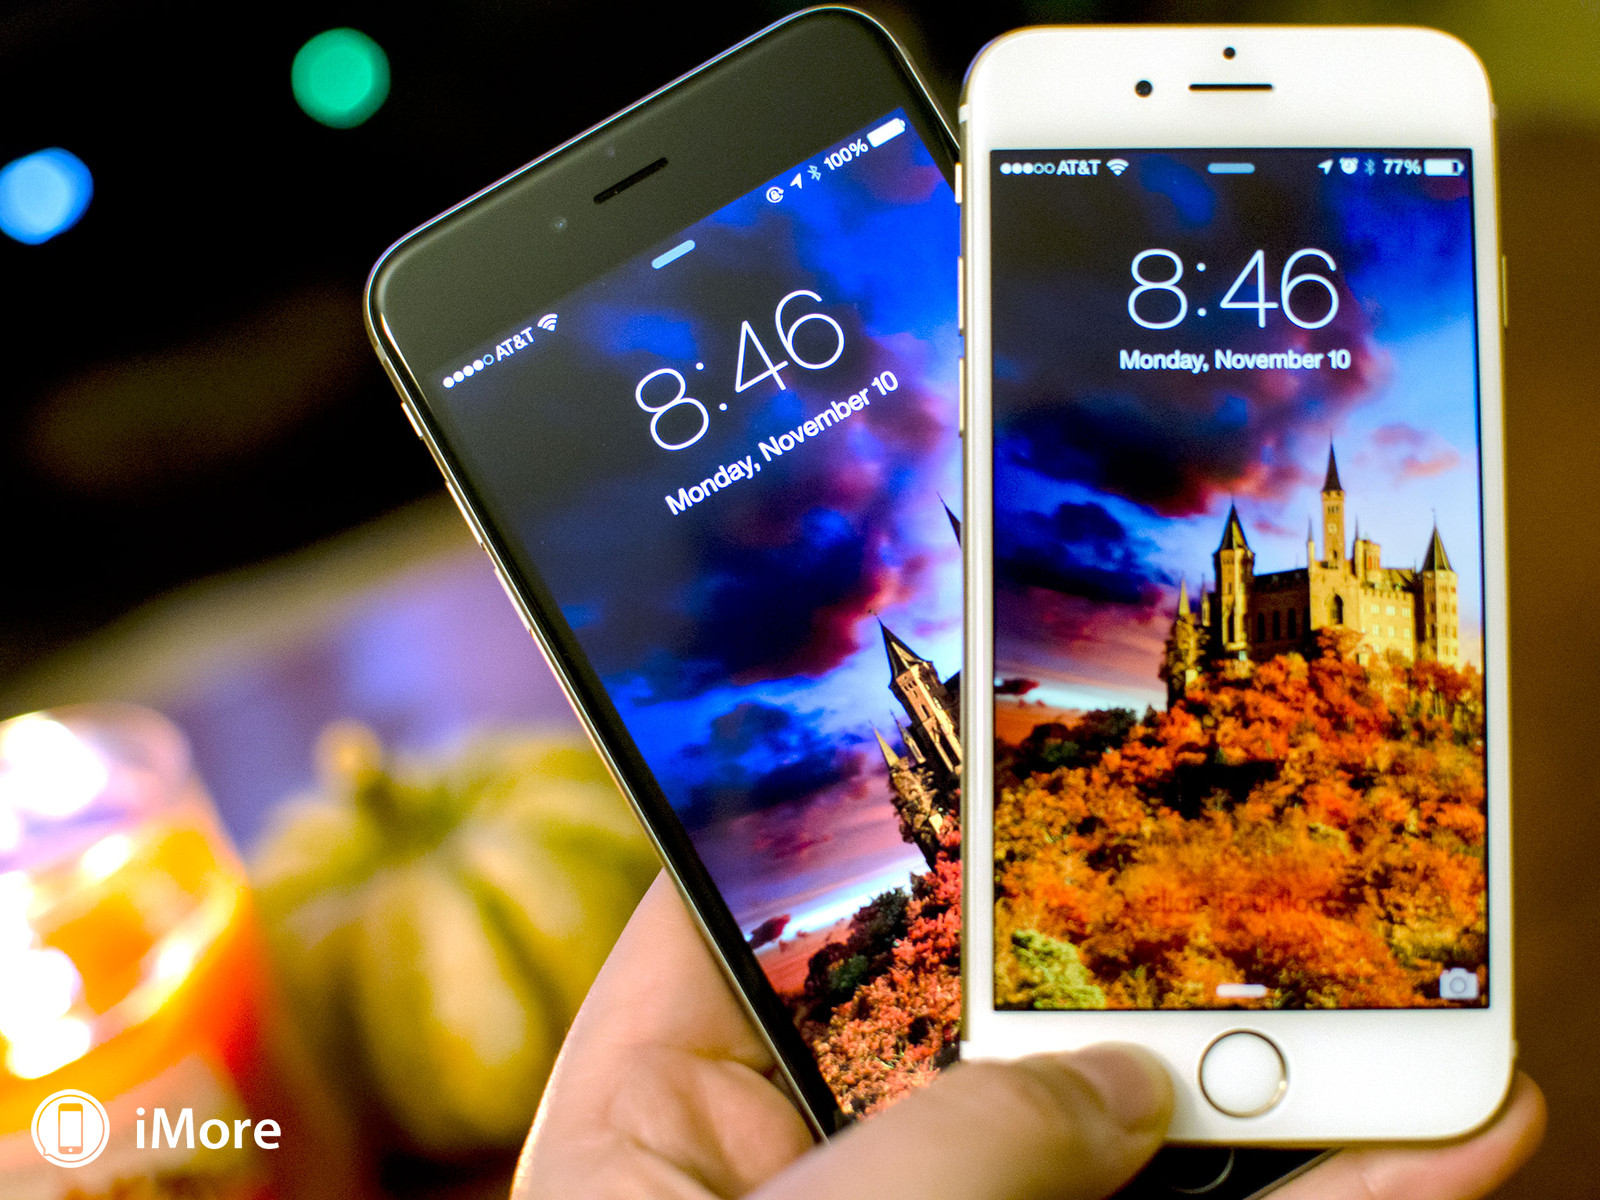 Best wallpaper apps for iPhone 6 and iPhone 6 Plus   iPhone iPad 1600x1200